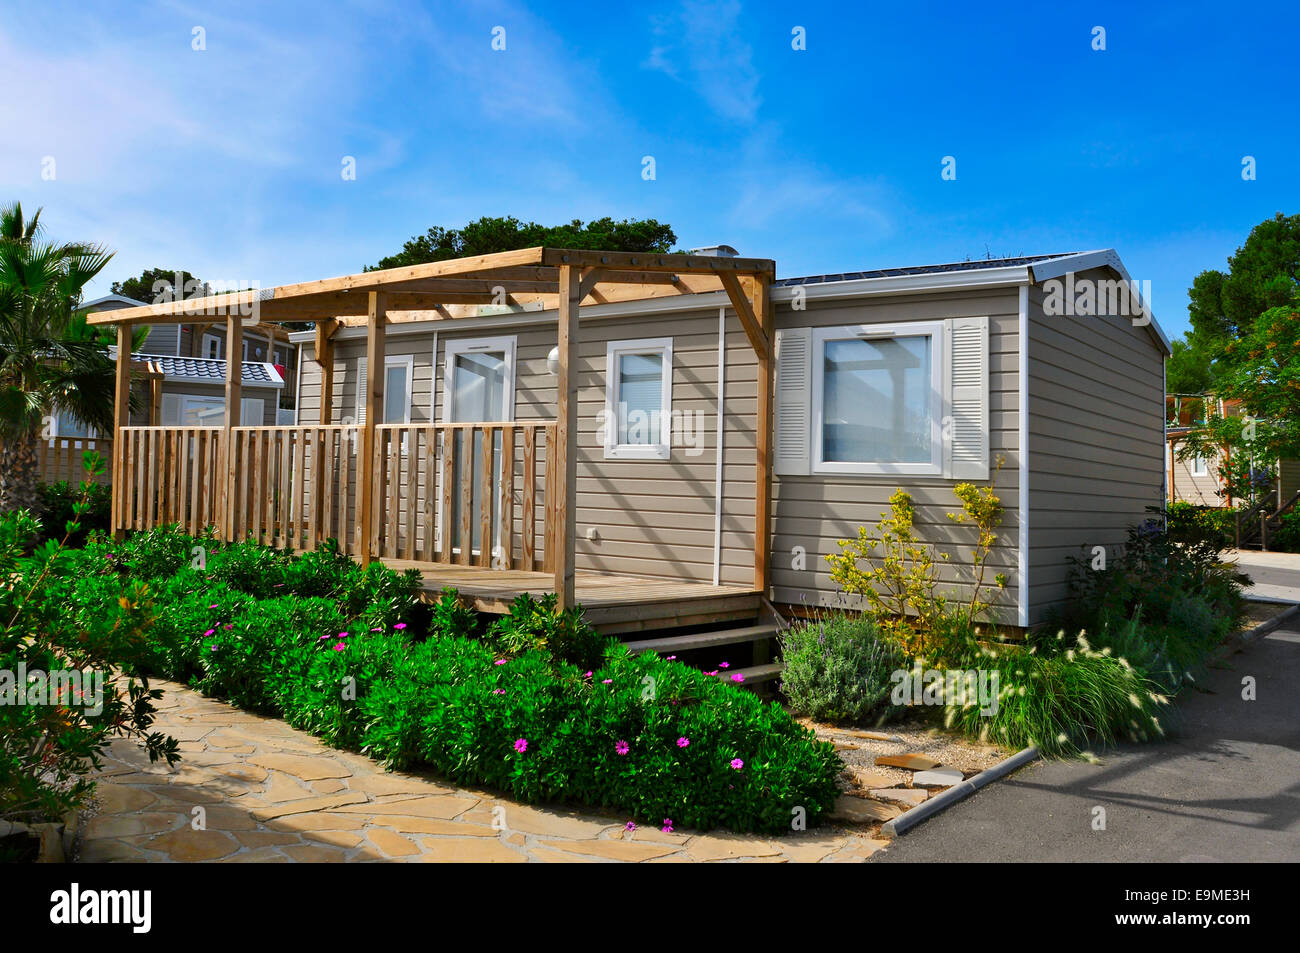 a nice mobile home with a wooden veranda in a campsite - Stock Image